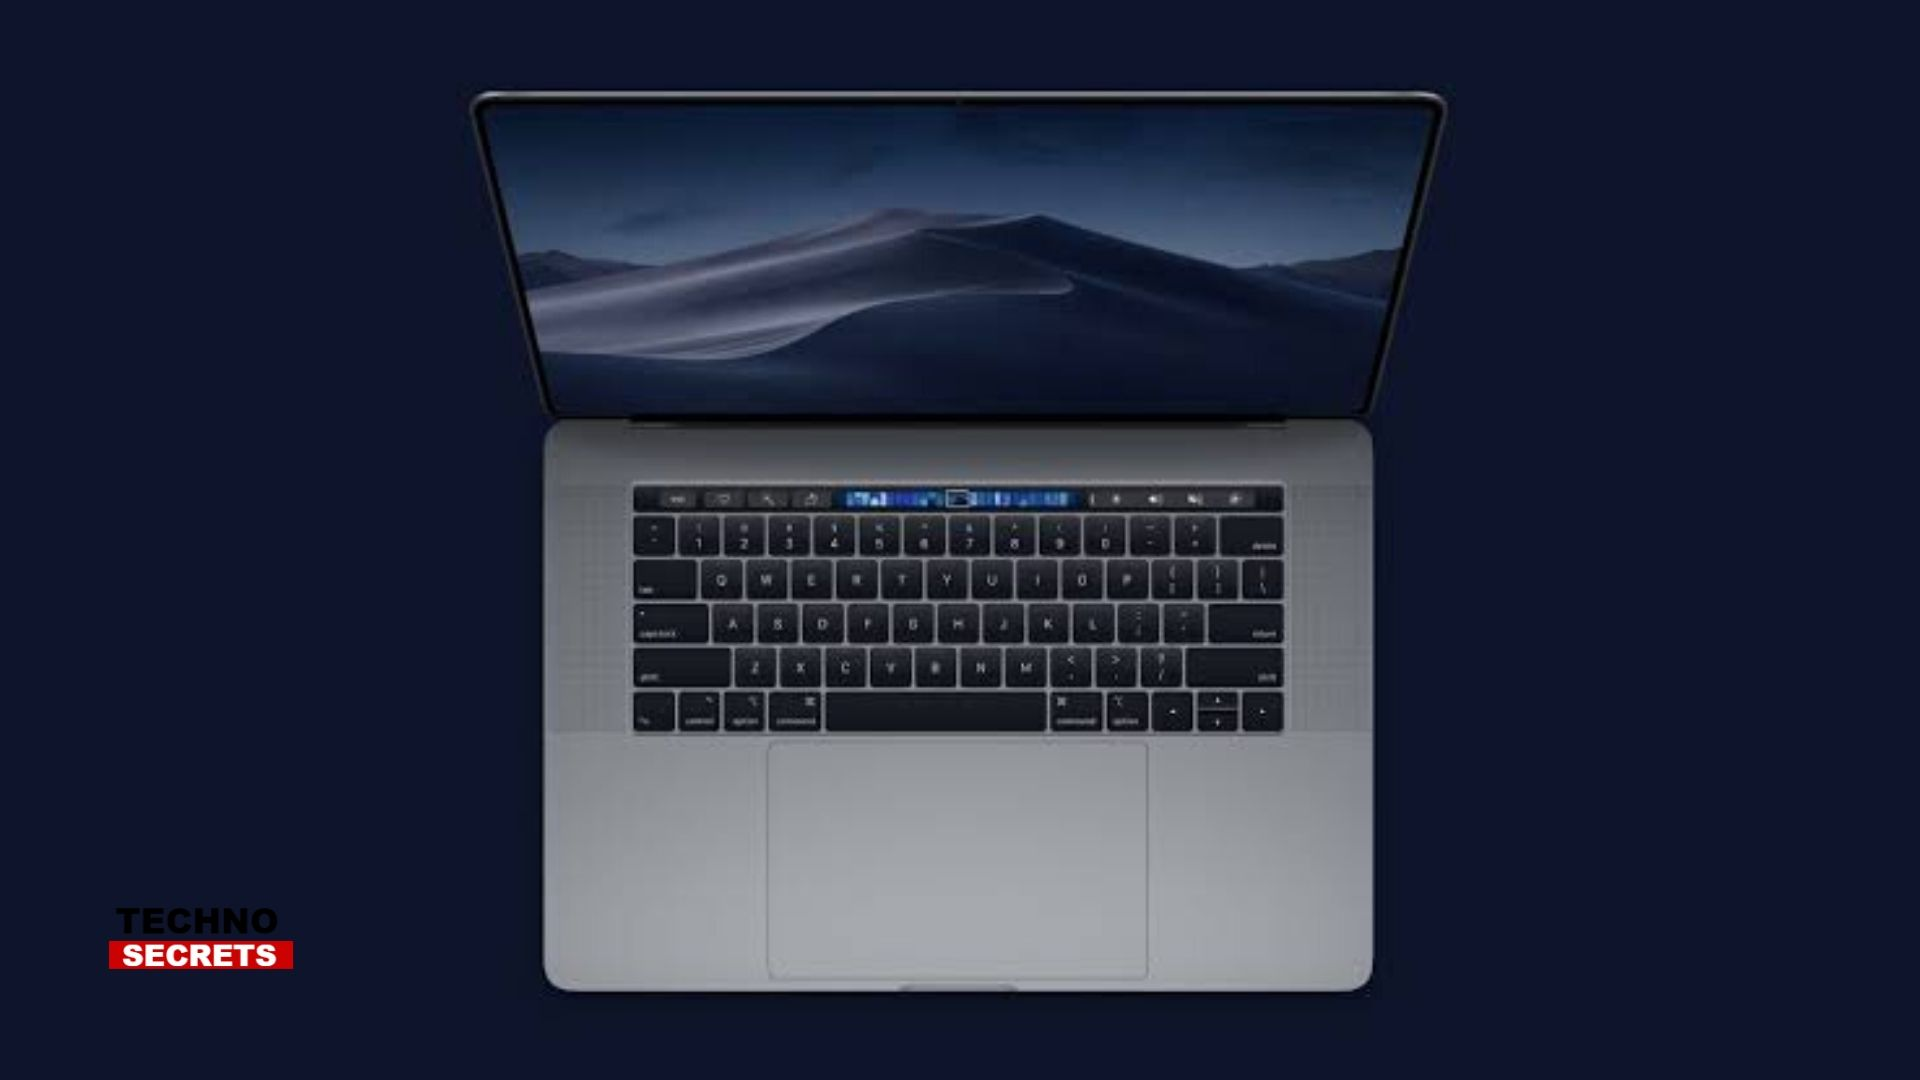 Apple Bids Goodbye to 15-Inch MacBook Pro With Launch of 16-Inch Model